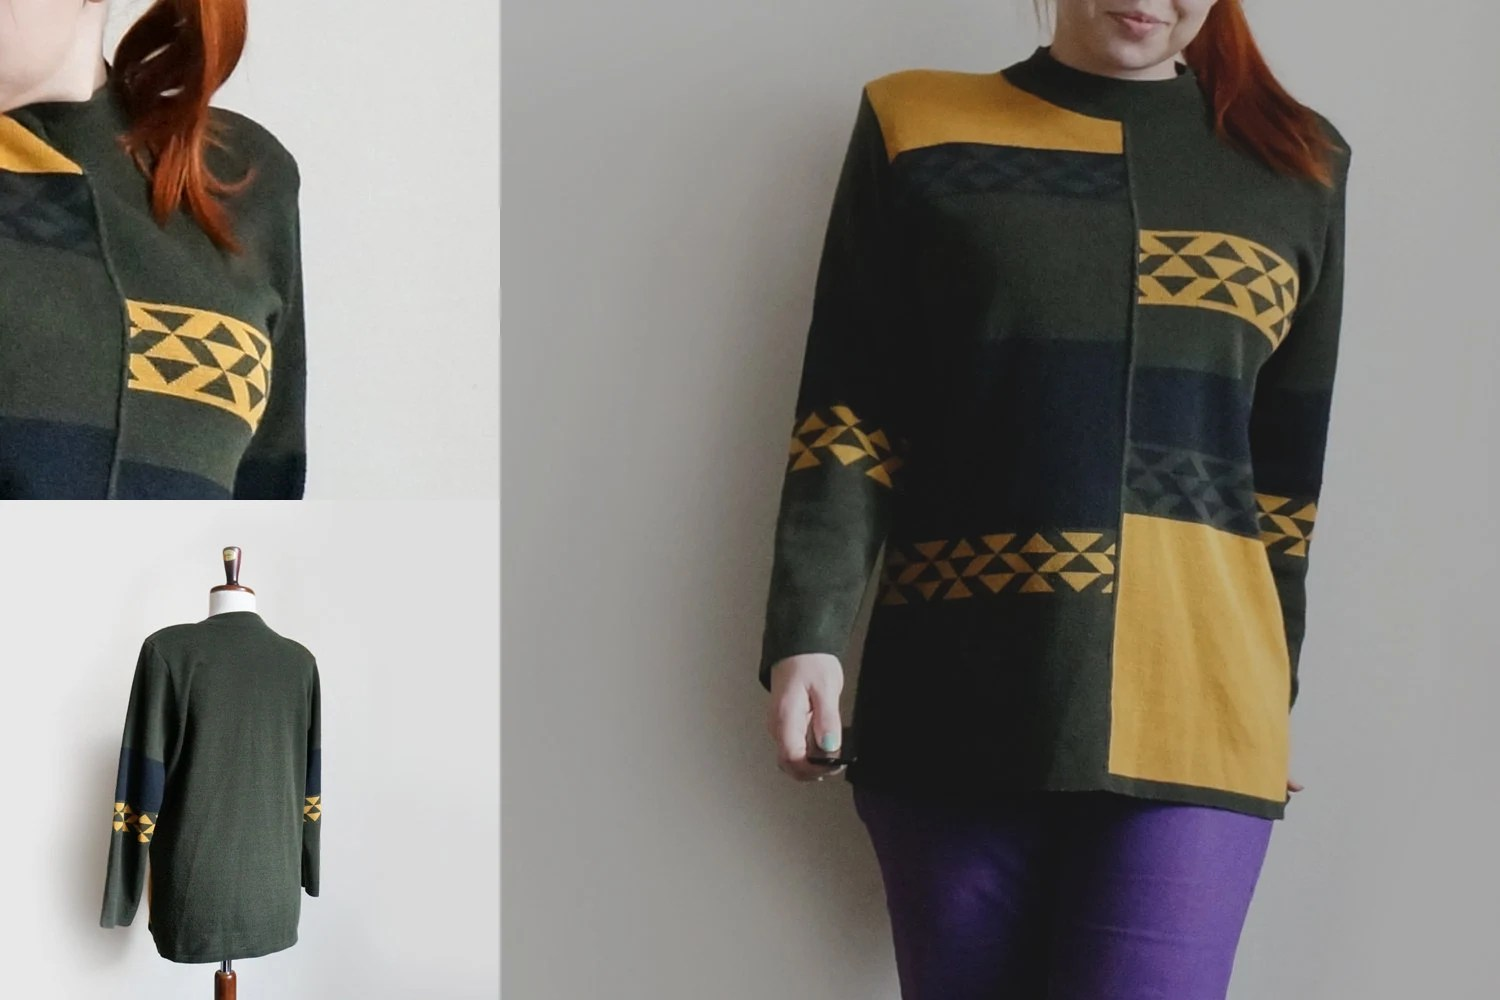 Vintage military sweater from 70s, geometric sweater with triangles, hipster sweater - plot